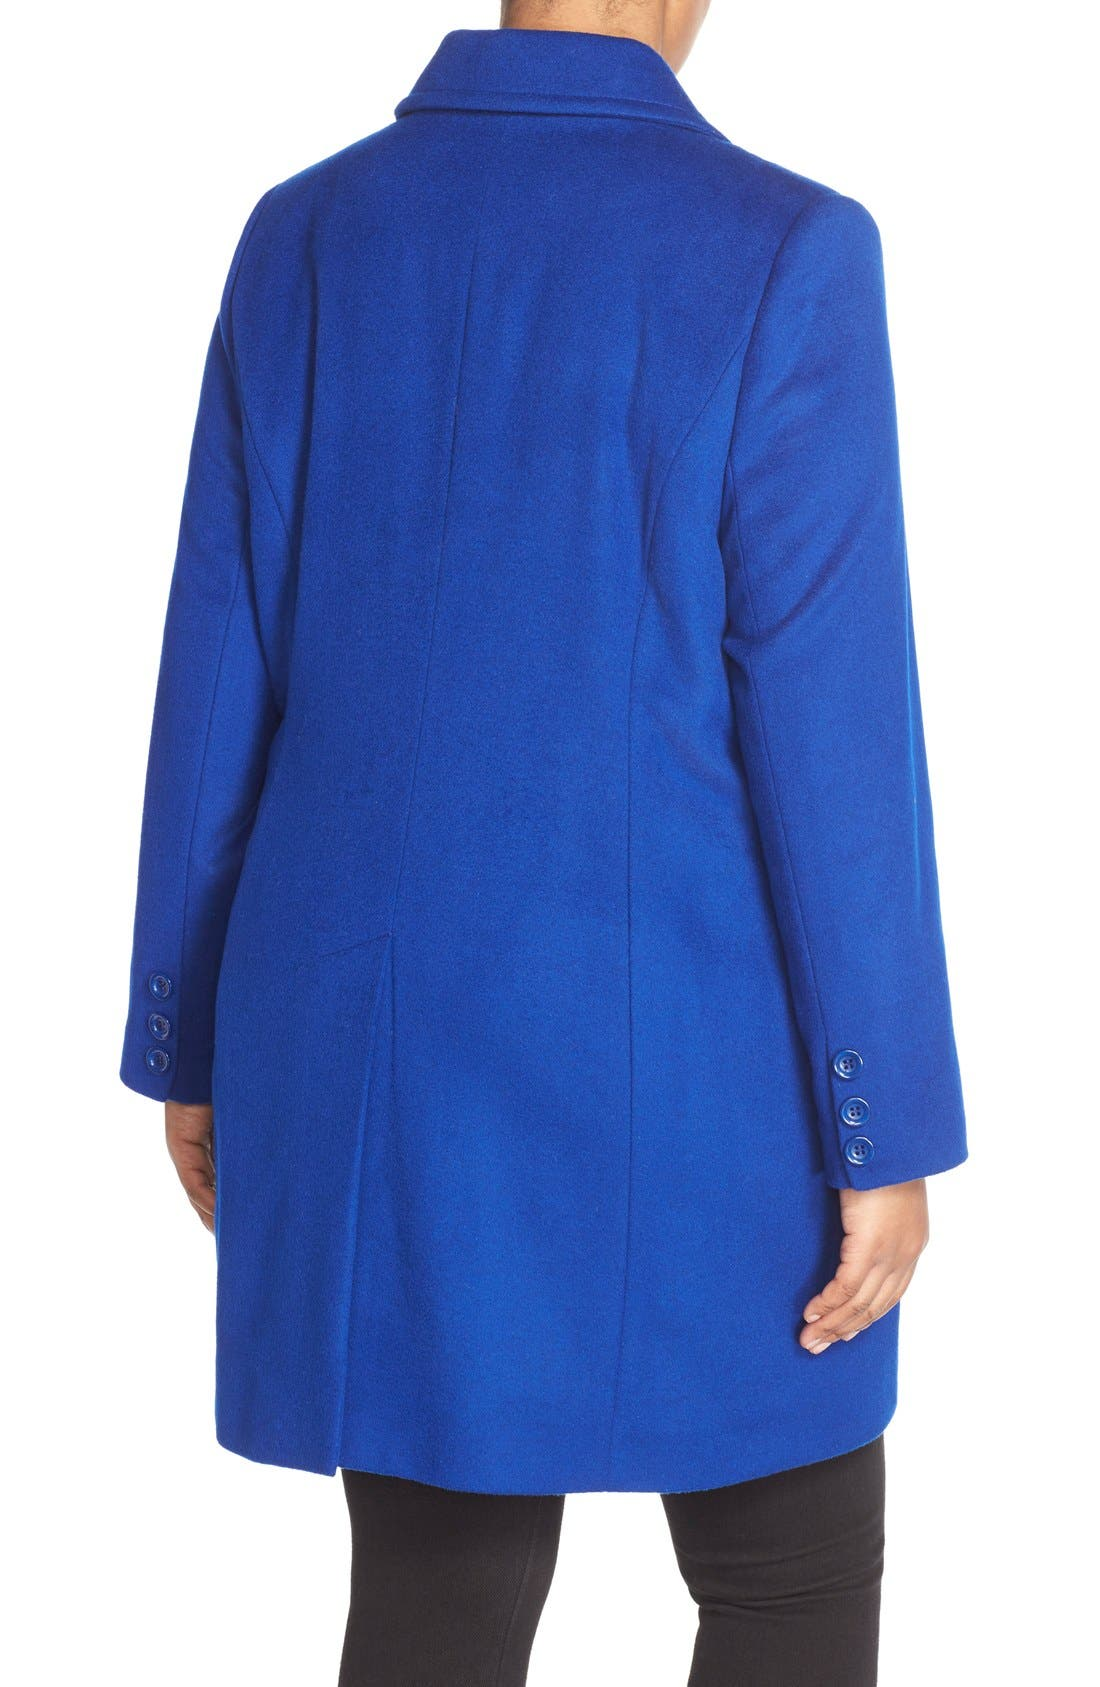 Notch Collar Wool Blend Coat,                             Alternate thumbnail 2, color,                             Cobalt